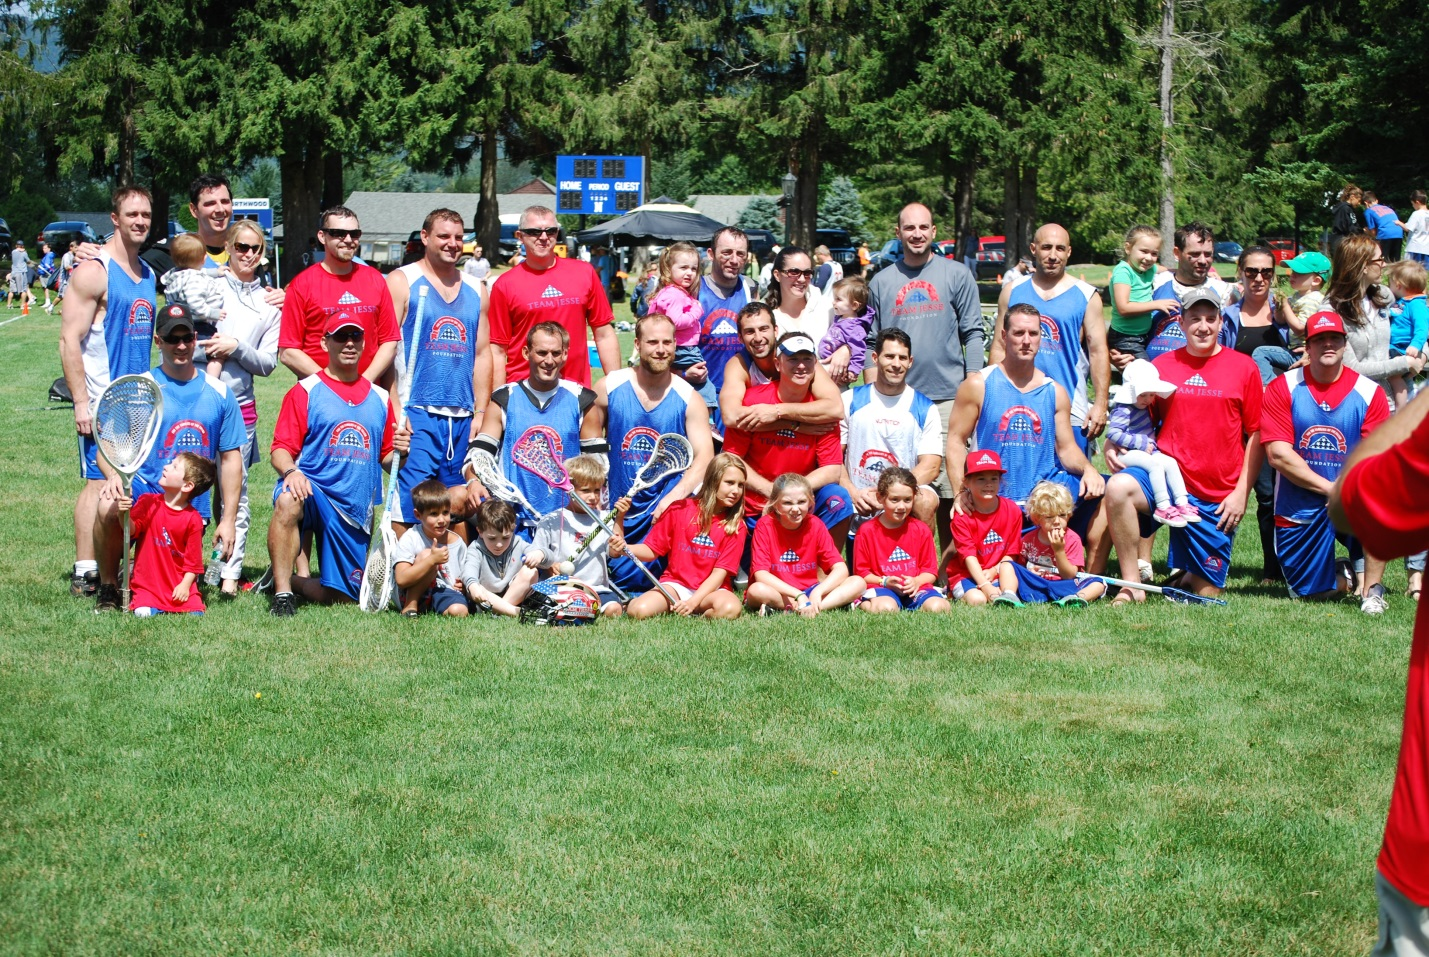 The Lake Placid Summit has also become an occasion to get many of the player's families together as well.